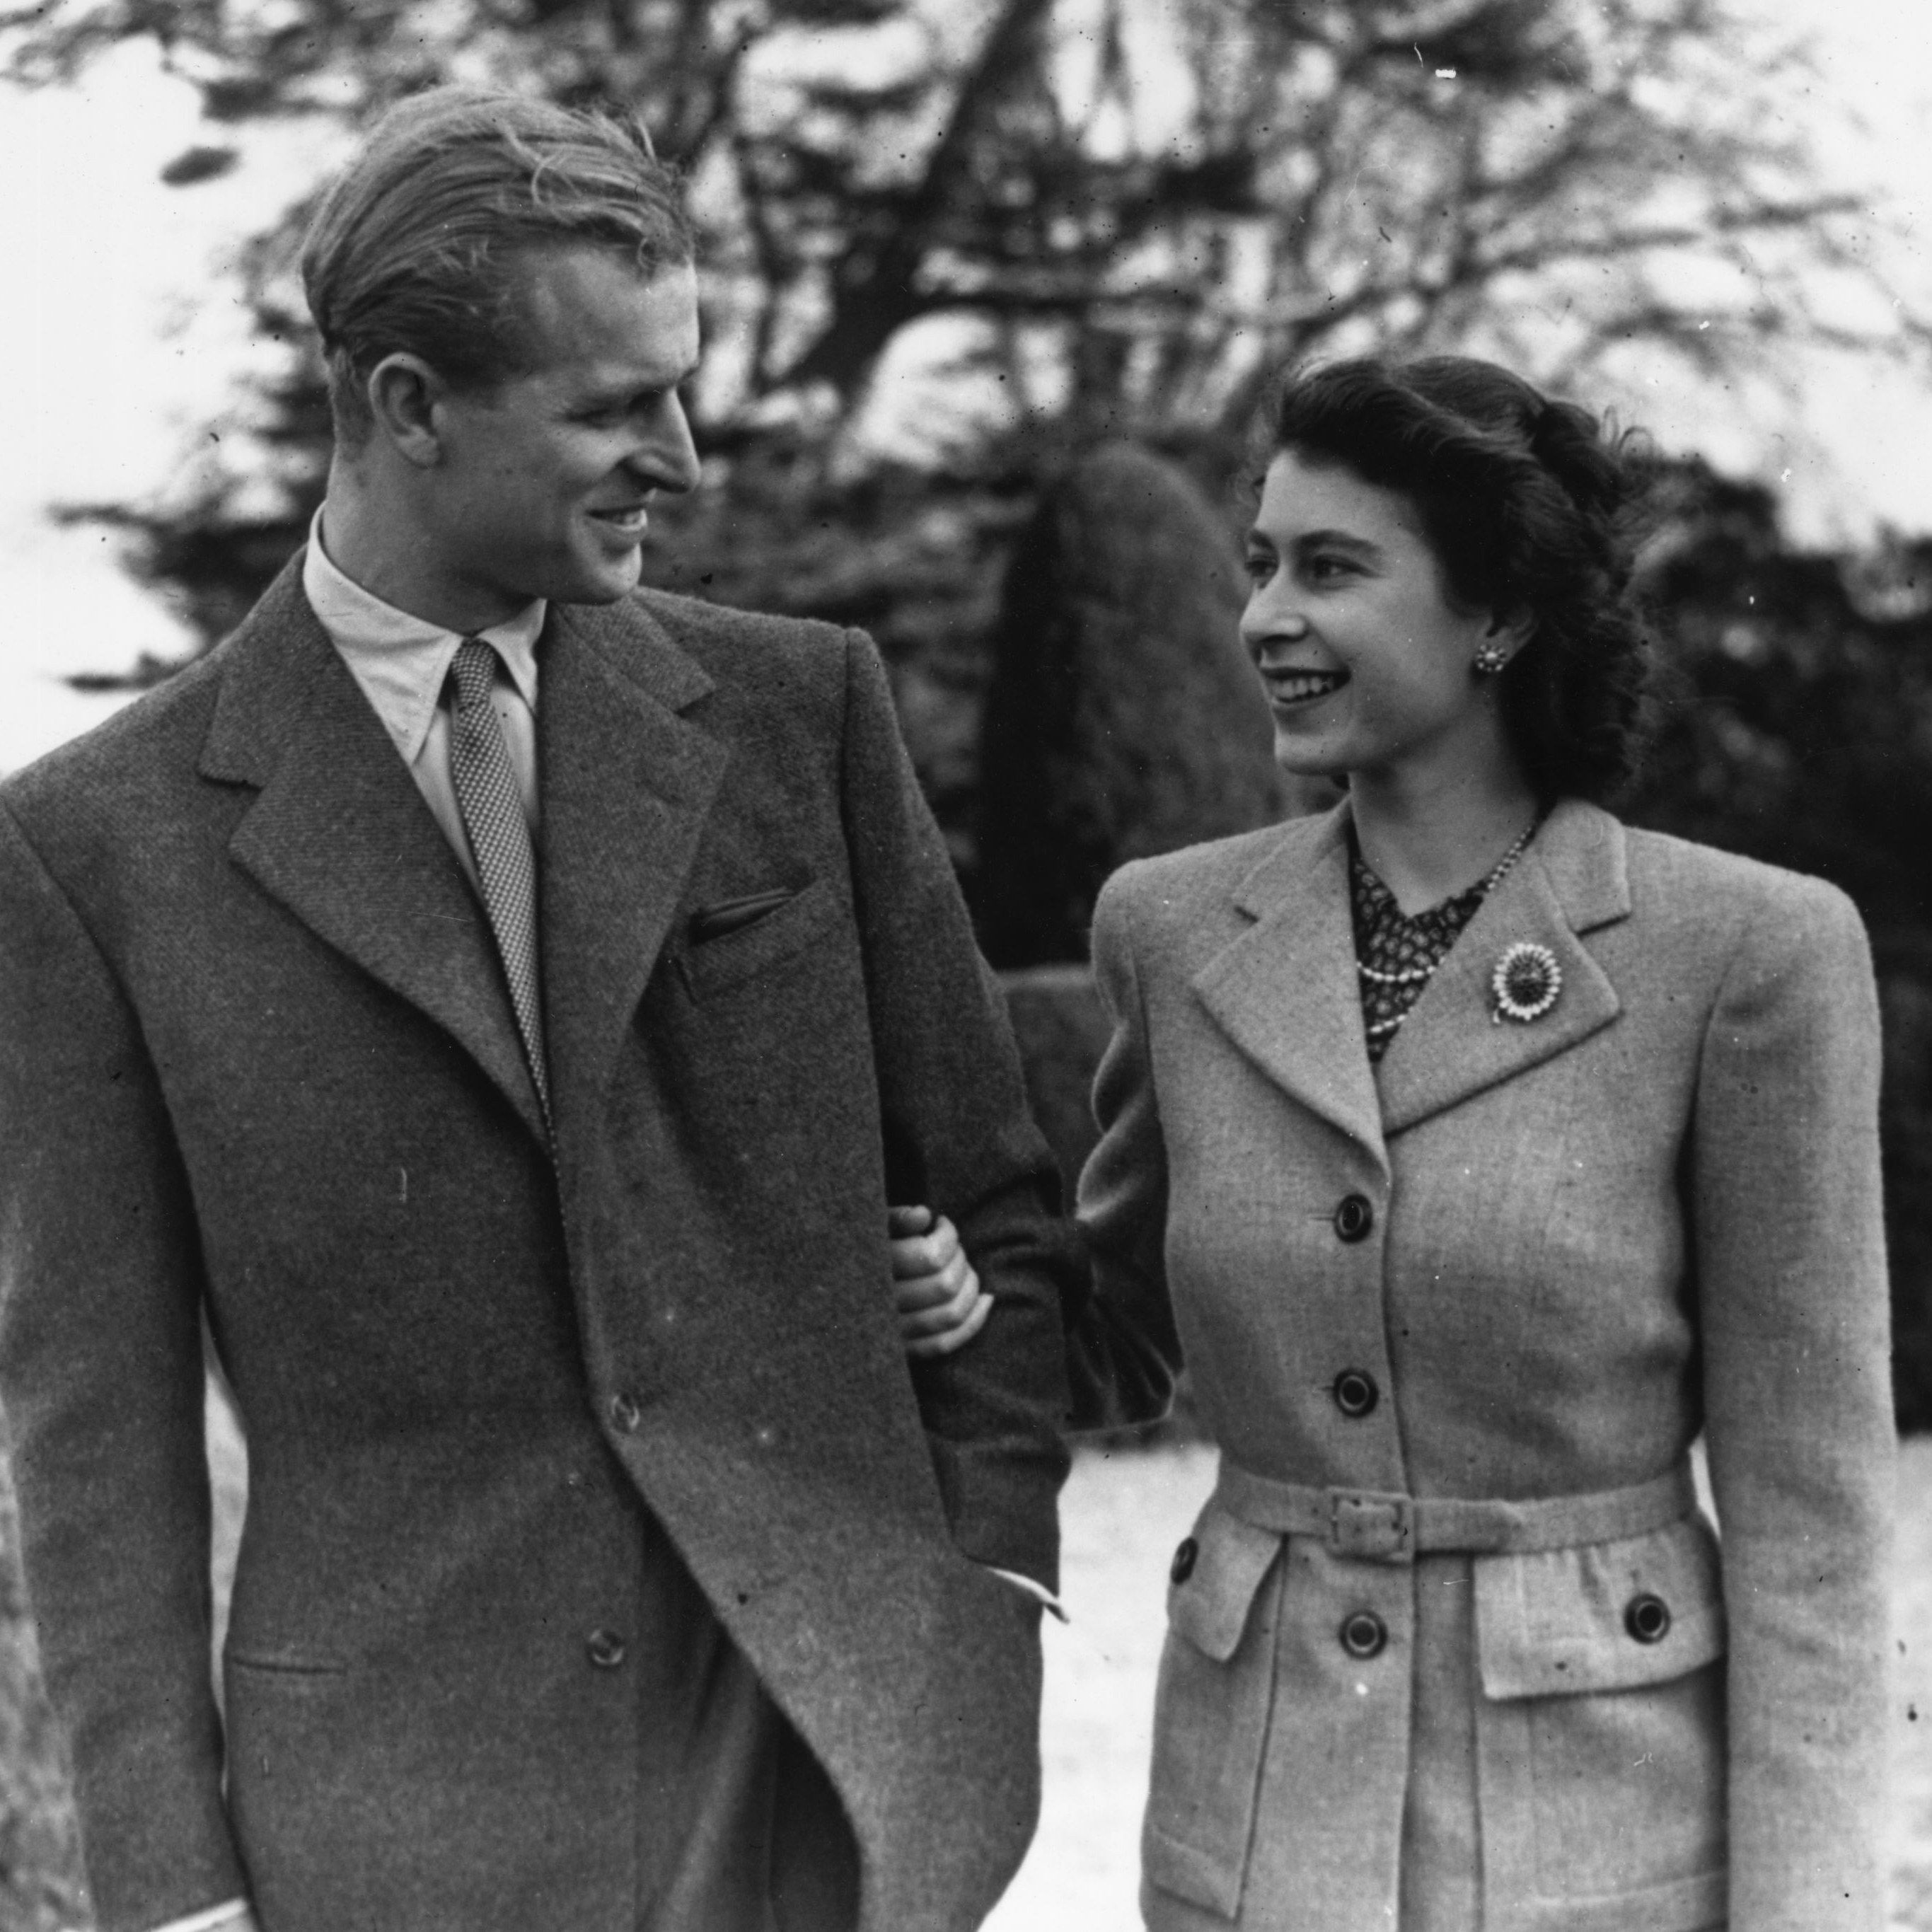 24th November 1947: Princess Elizabeth and The Prince Philip, Duke of Edinburgh enjoying a walk during their honeymoon at Broadlands, Romsey, Hampshire. (Photo by Topical Press Agency/Getty Images)  Getty Images